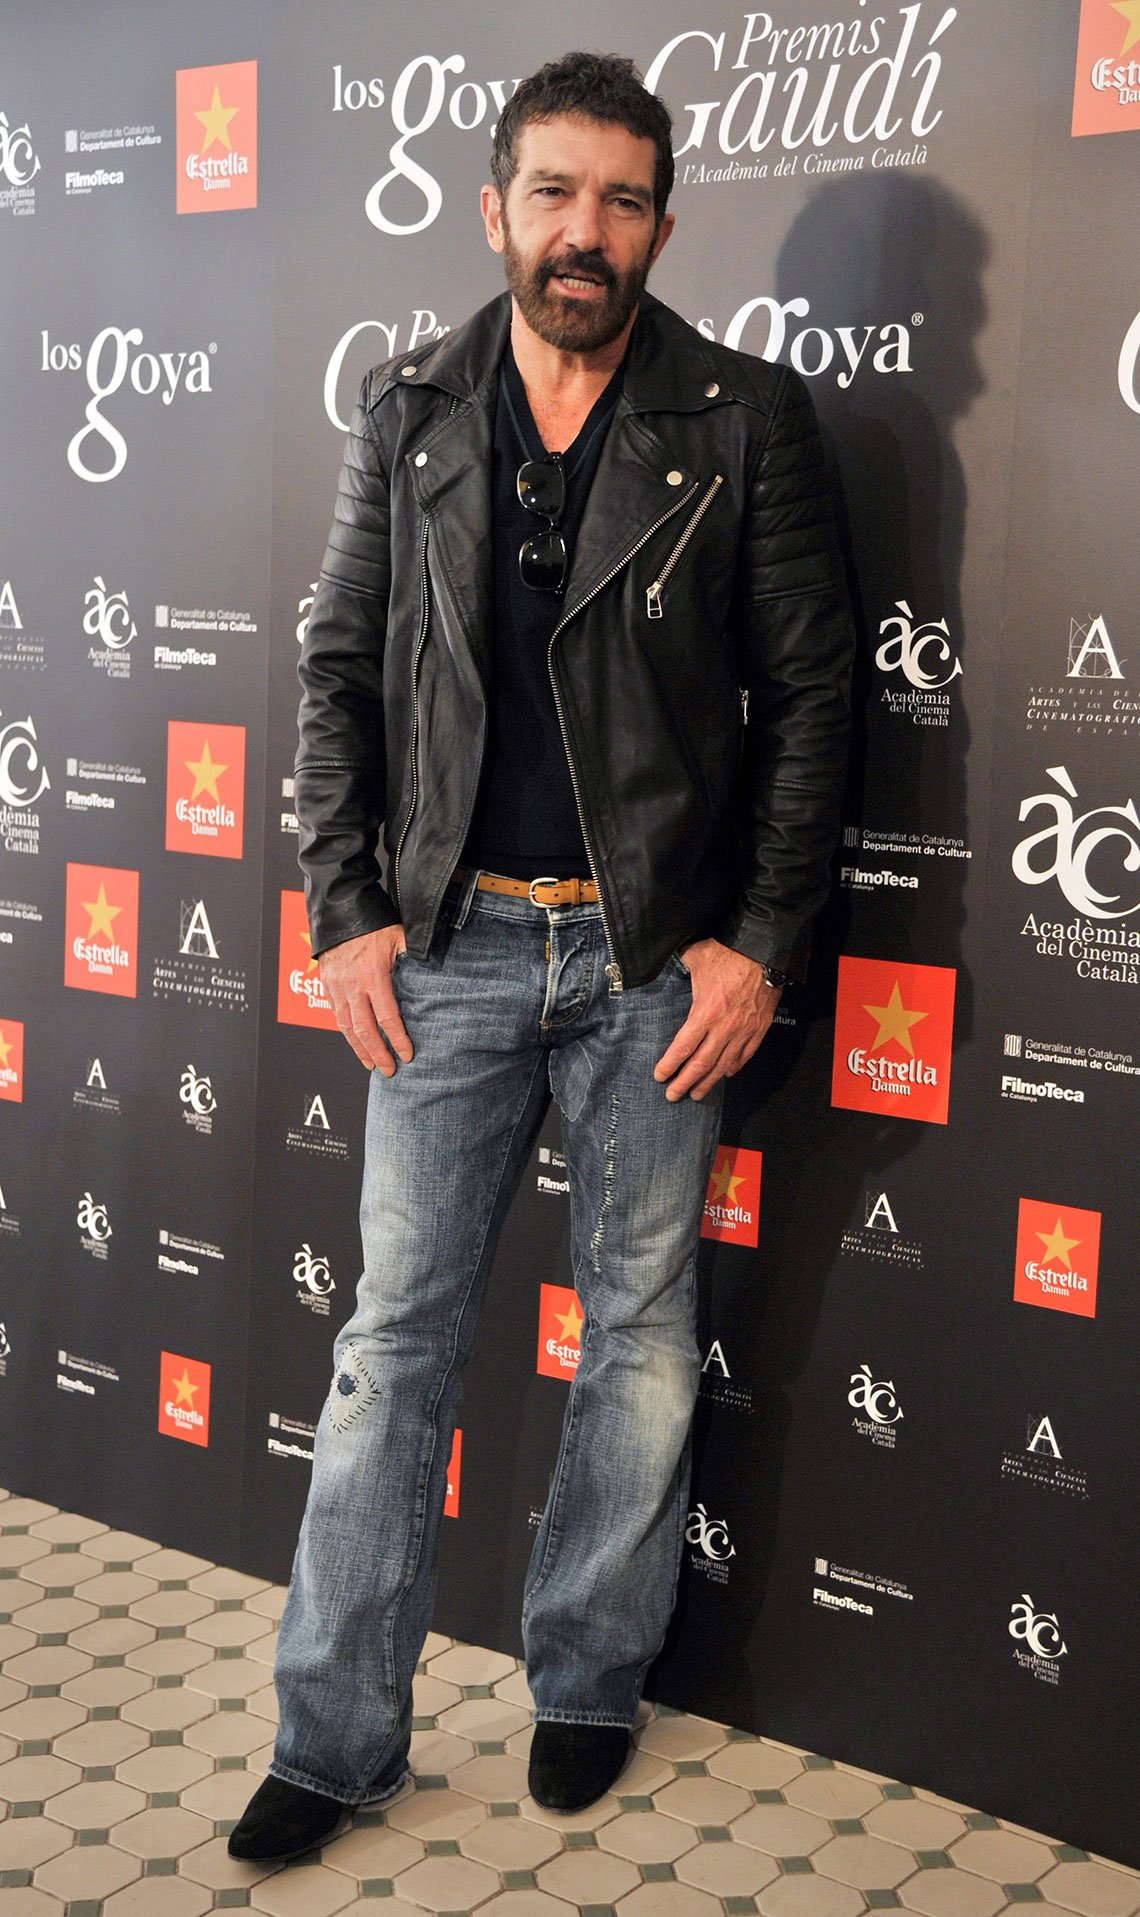 item 7, Gallery image. Antonio Banderas in faded jeans, black leather biker jacket